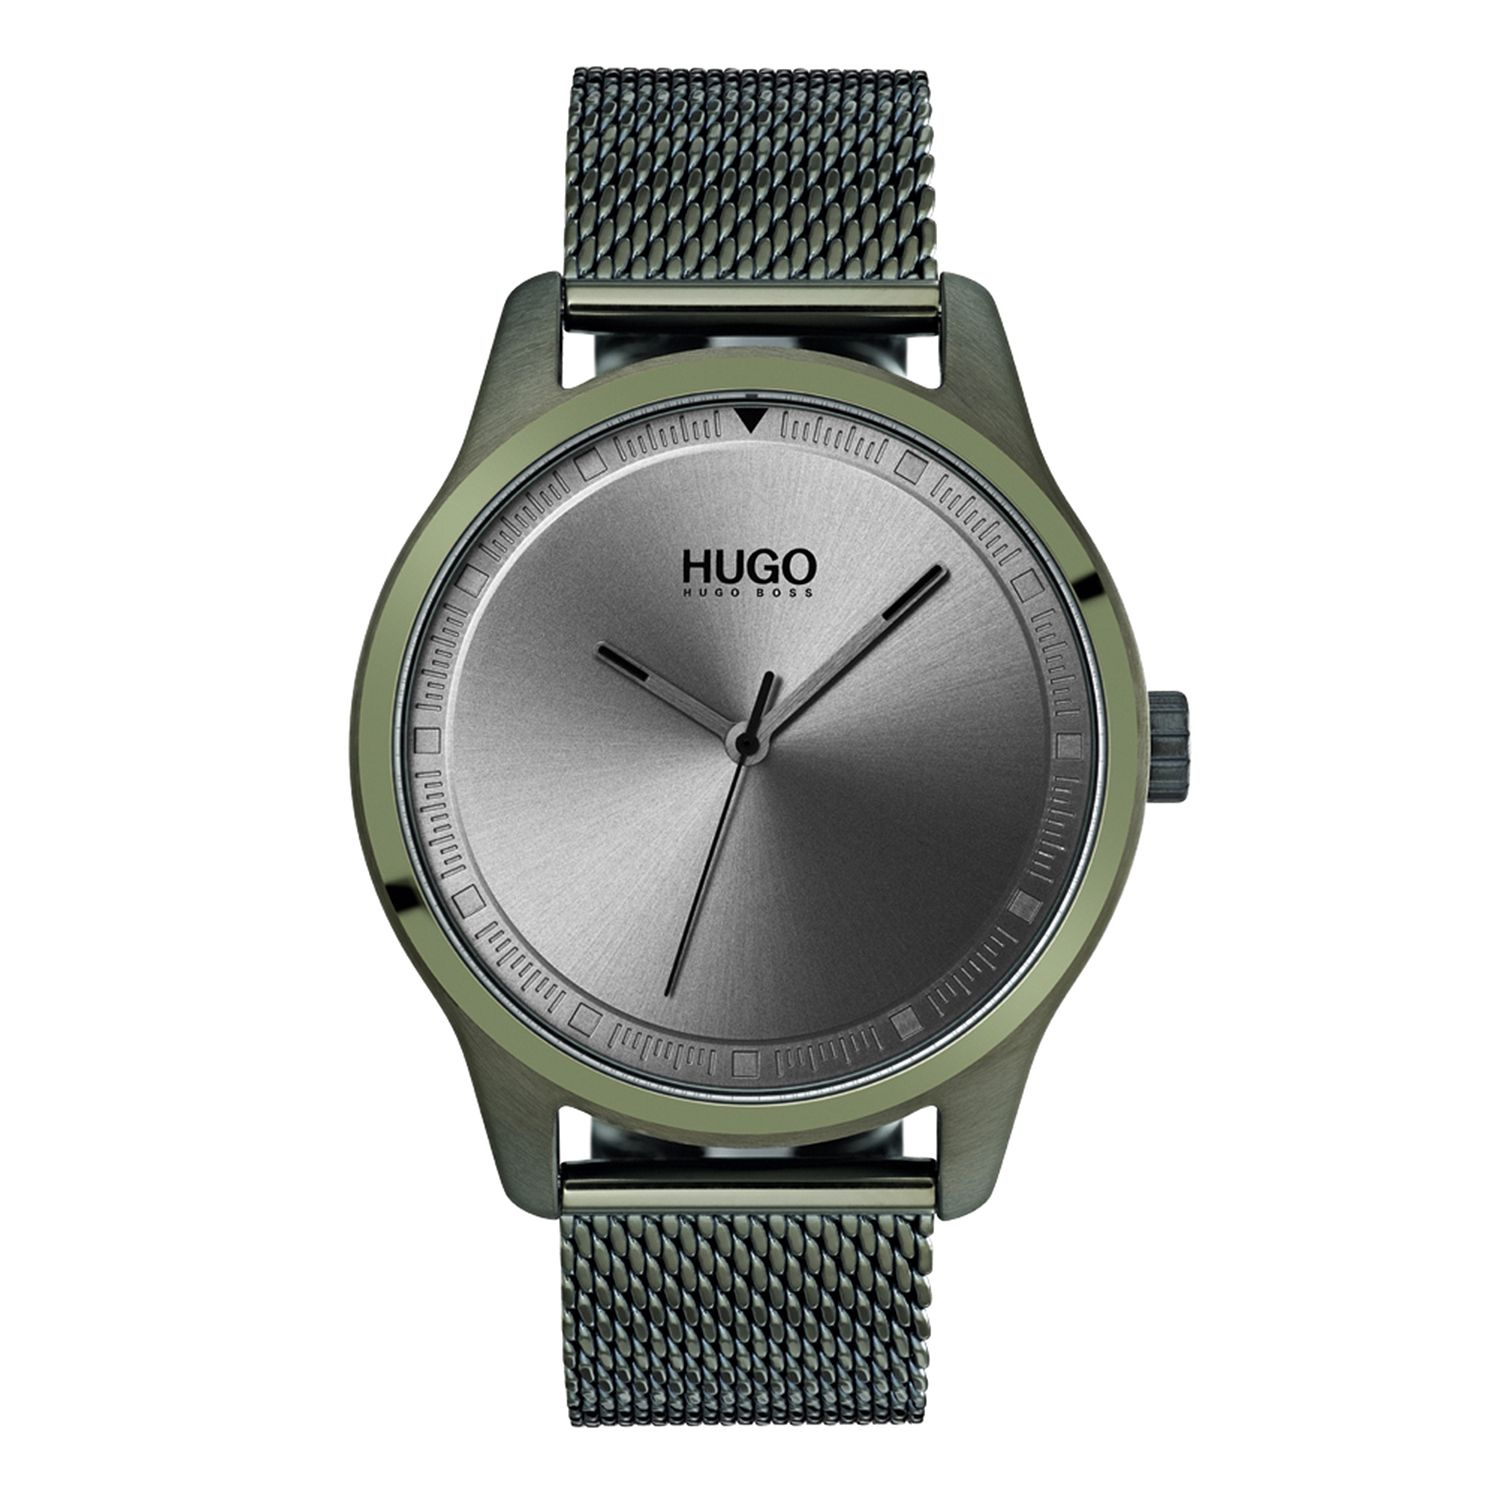 HUGO MOVE Men's Olive IP Stainless Steel Mesh Bracelet Watch - Product number 9647872